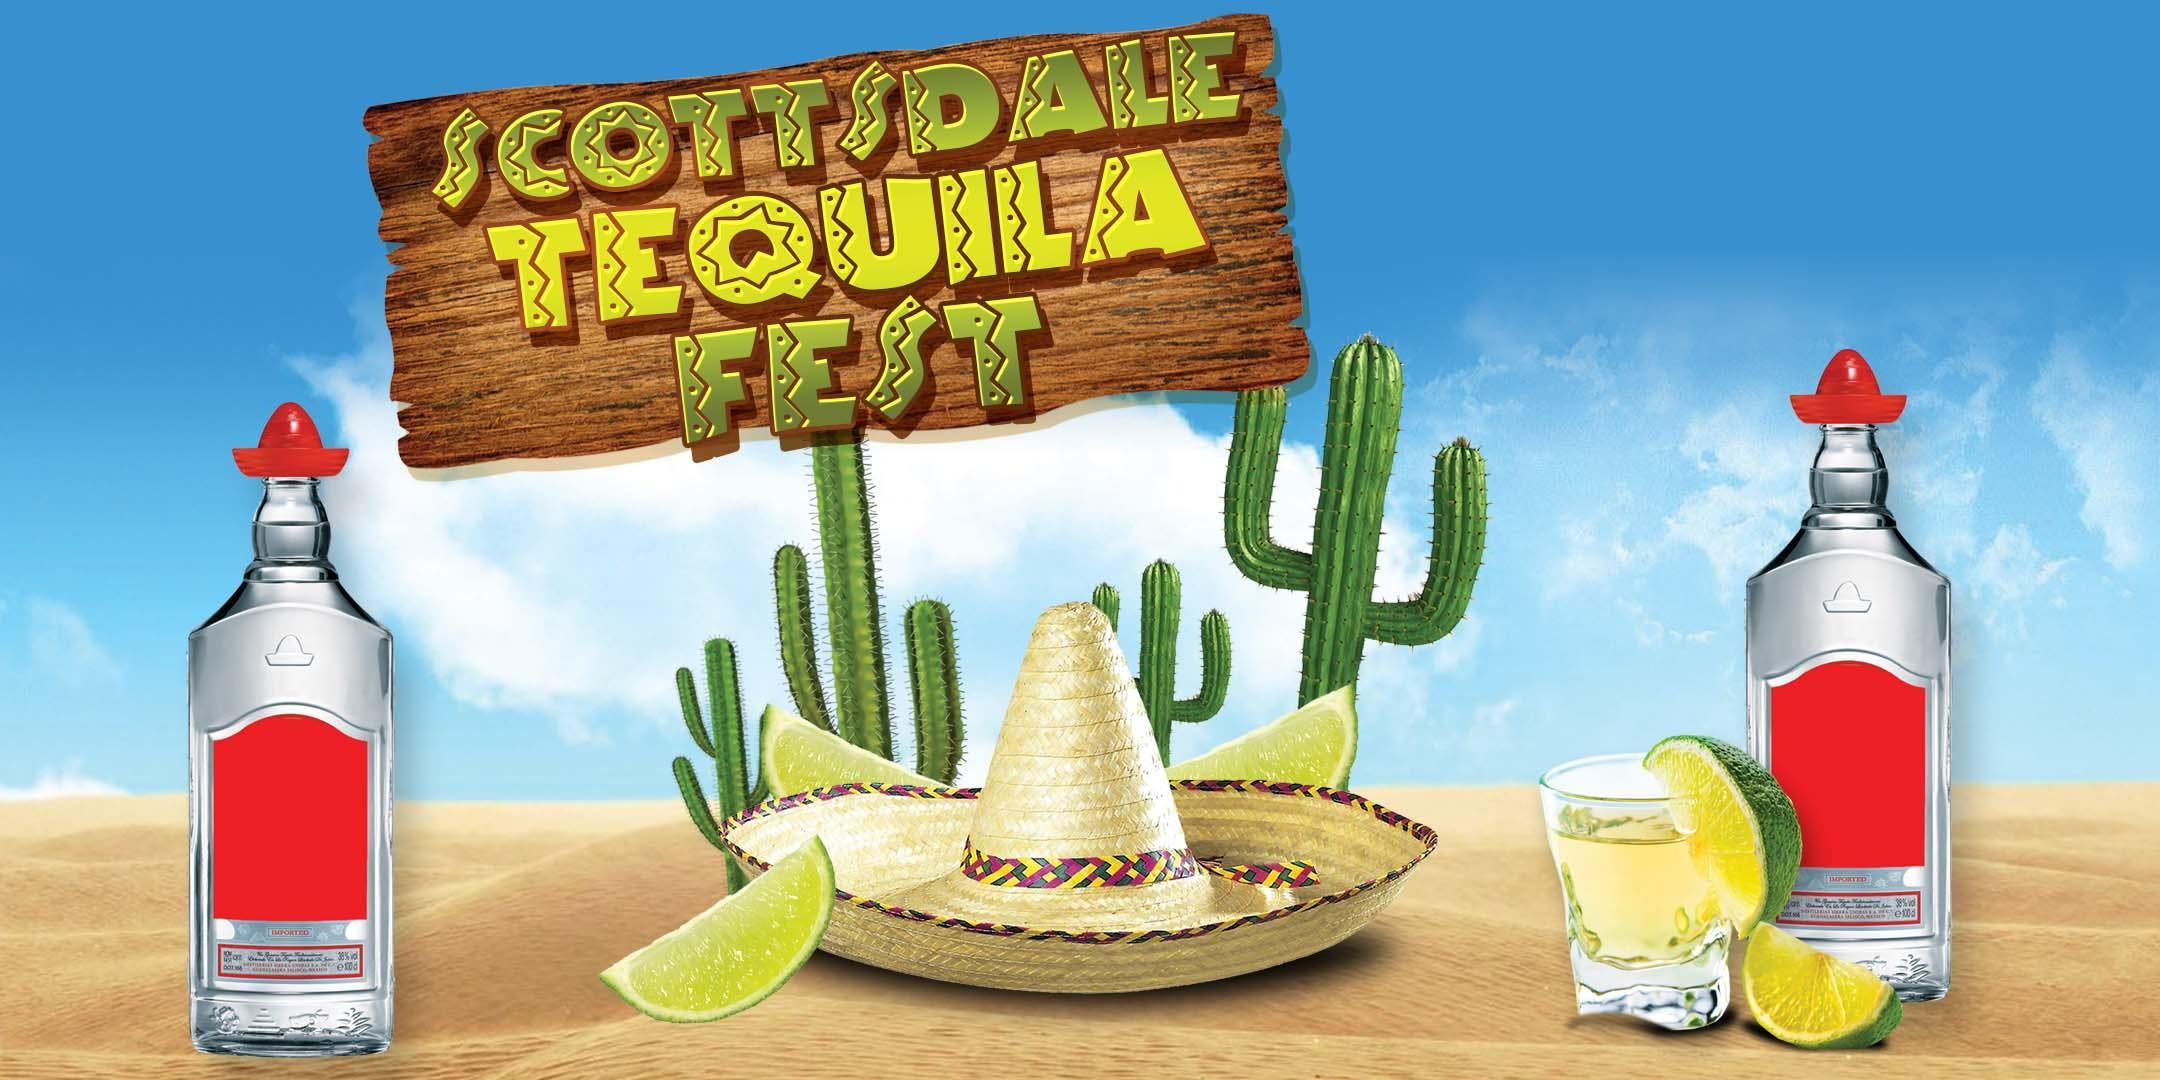 Scottsdale Tequila Fest - Tequila Tasting in Old Town!